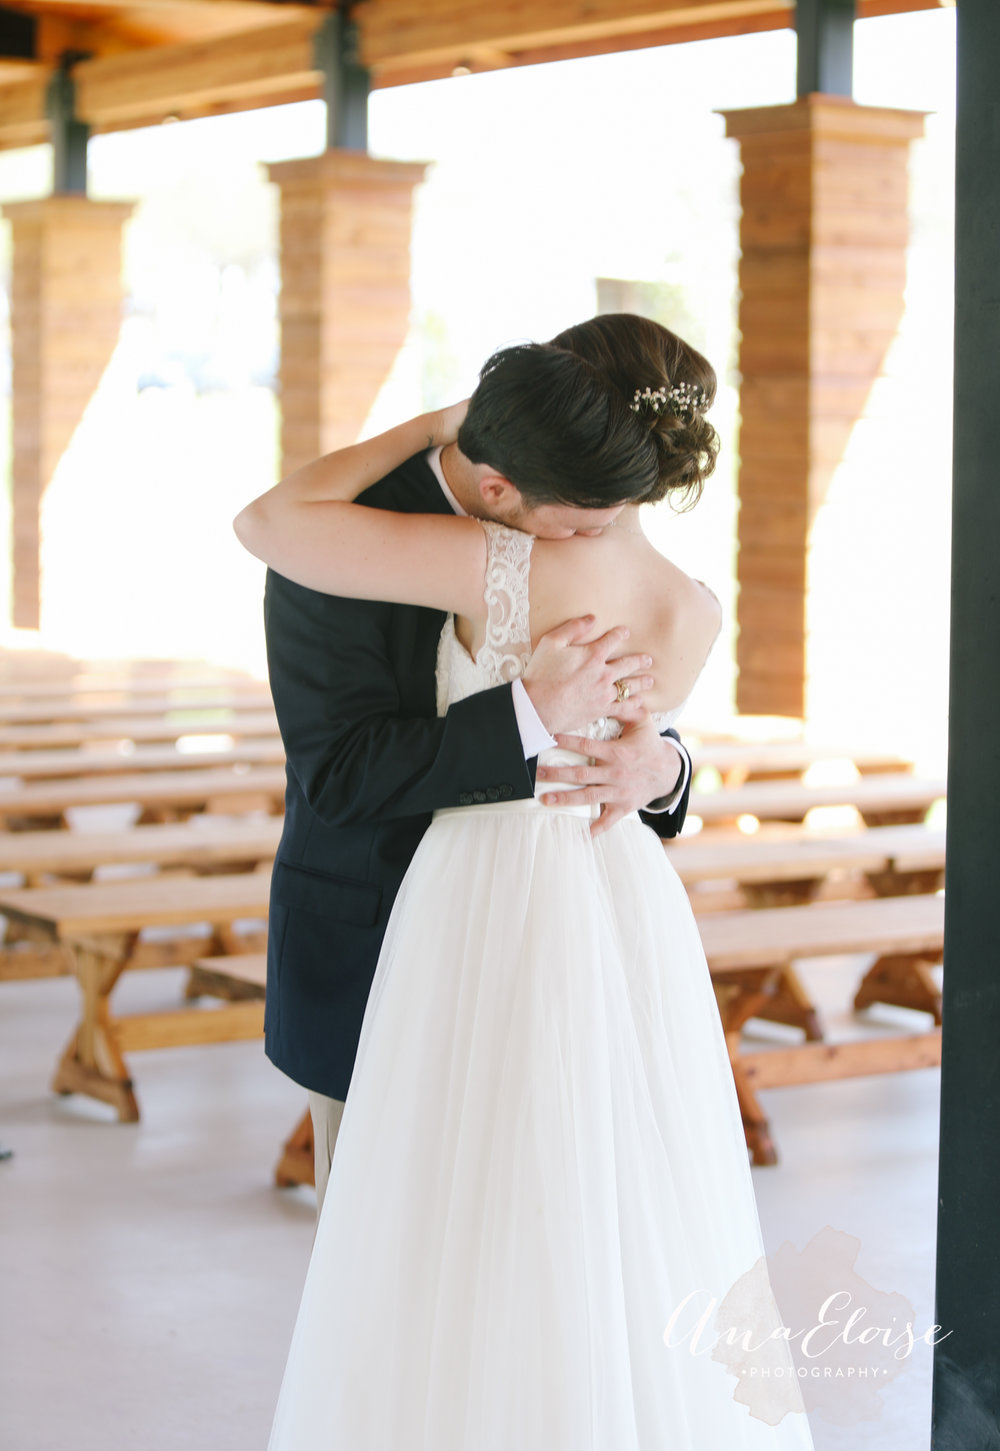 Ana Eloise Photography Dallas Fort Worth Wedding Photography Aubrey The Barn The Milestone Mansion The Knot